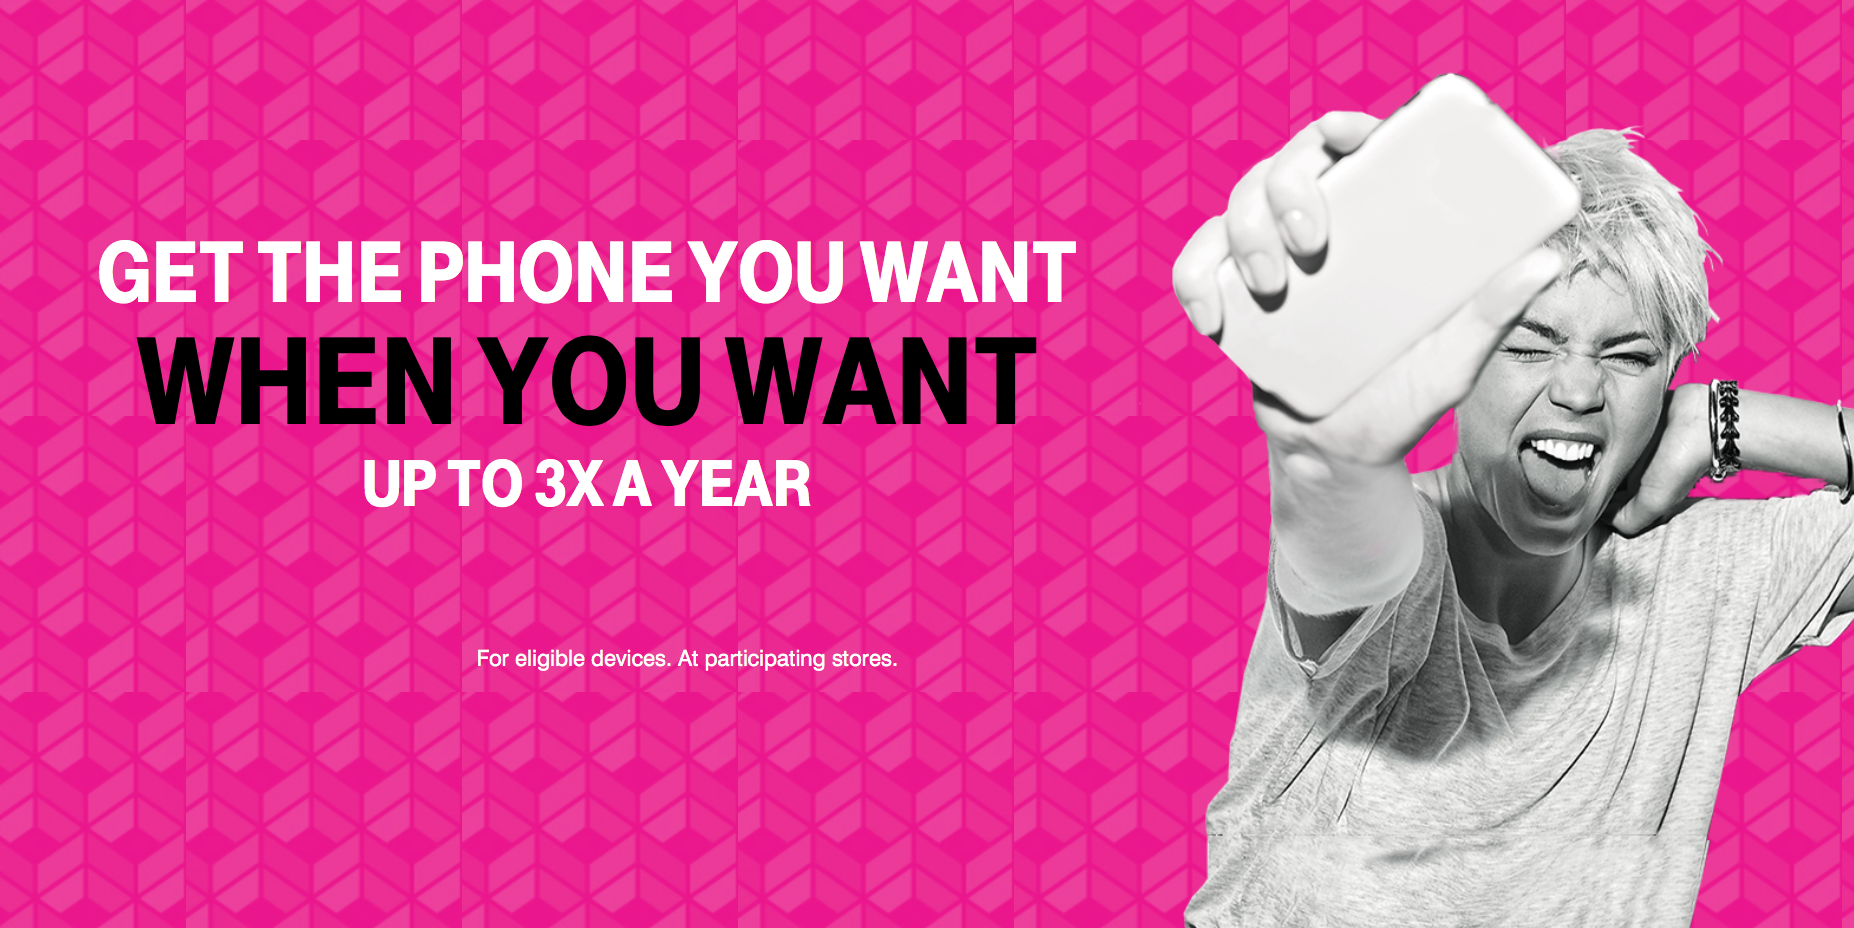 Jump On Demand T-Mobile